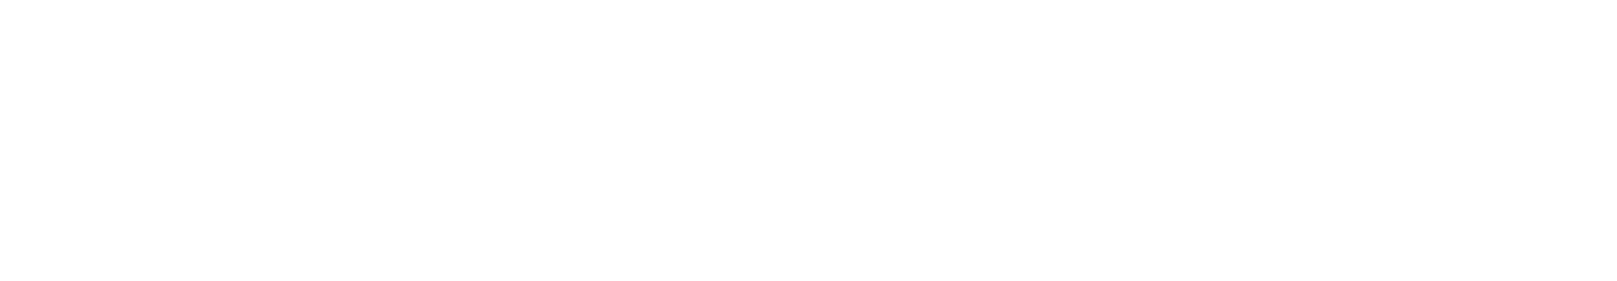 The Marine Hotel Logo